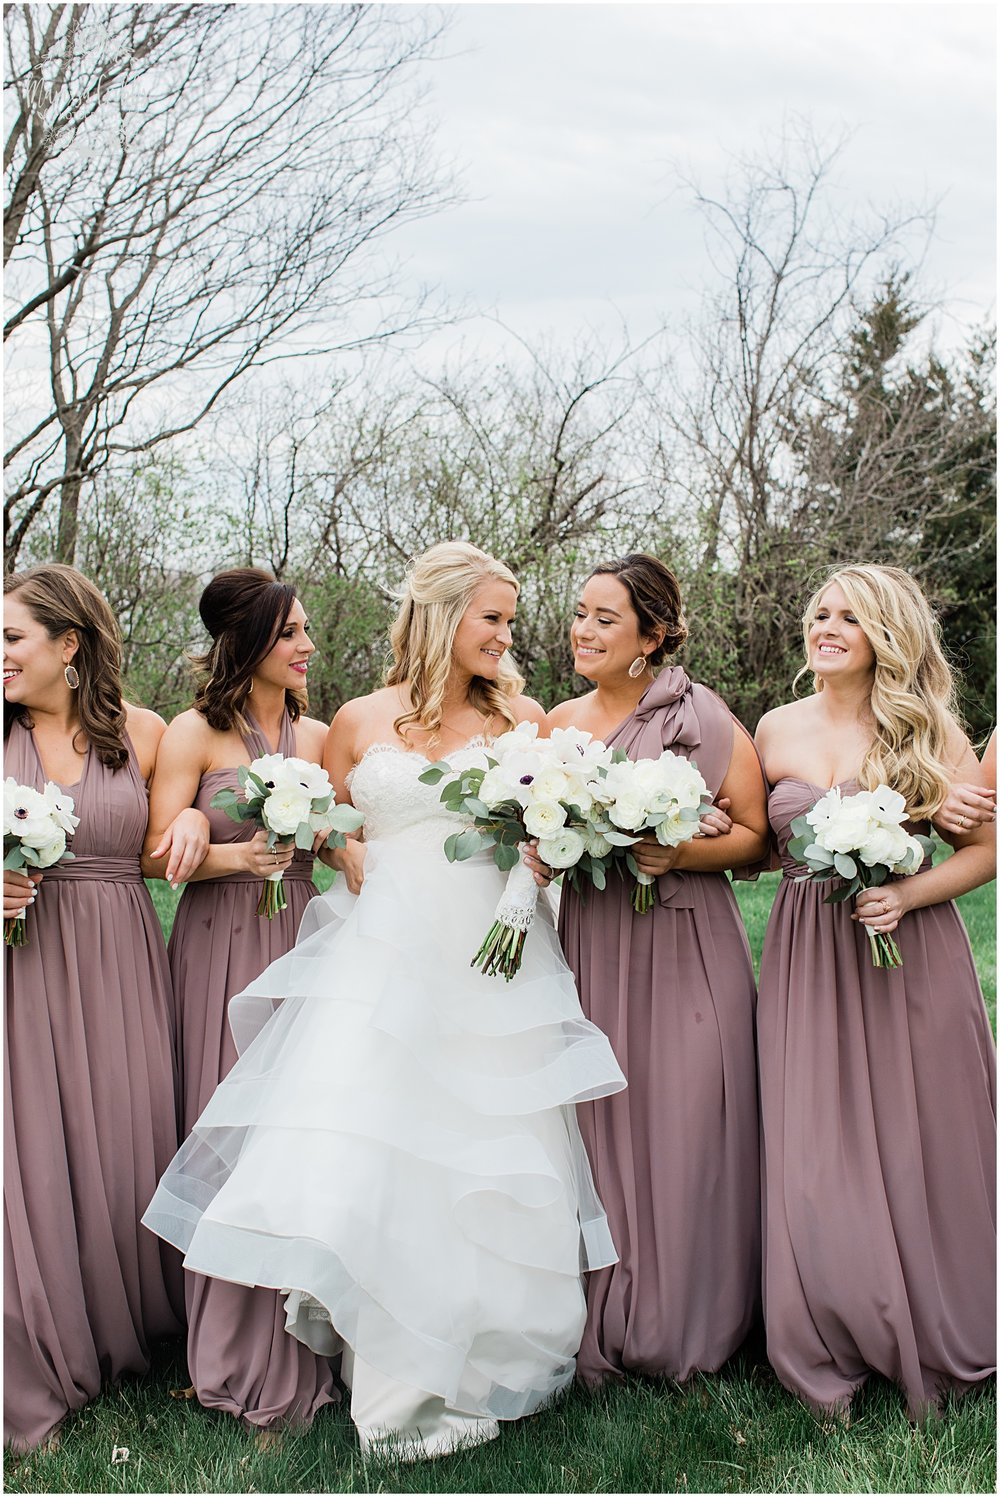 TILSON WEDDING | THE LEGACY AT GREEN HILLS | SIMPLE ELEGANCE | MARISSA CRIBBS PHOTOGRAPHY_4695.jpg